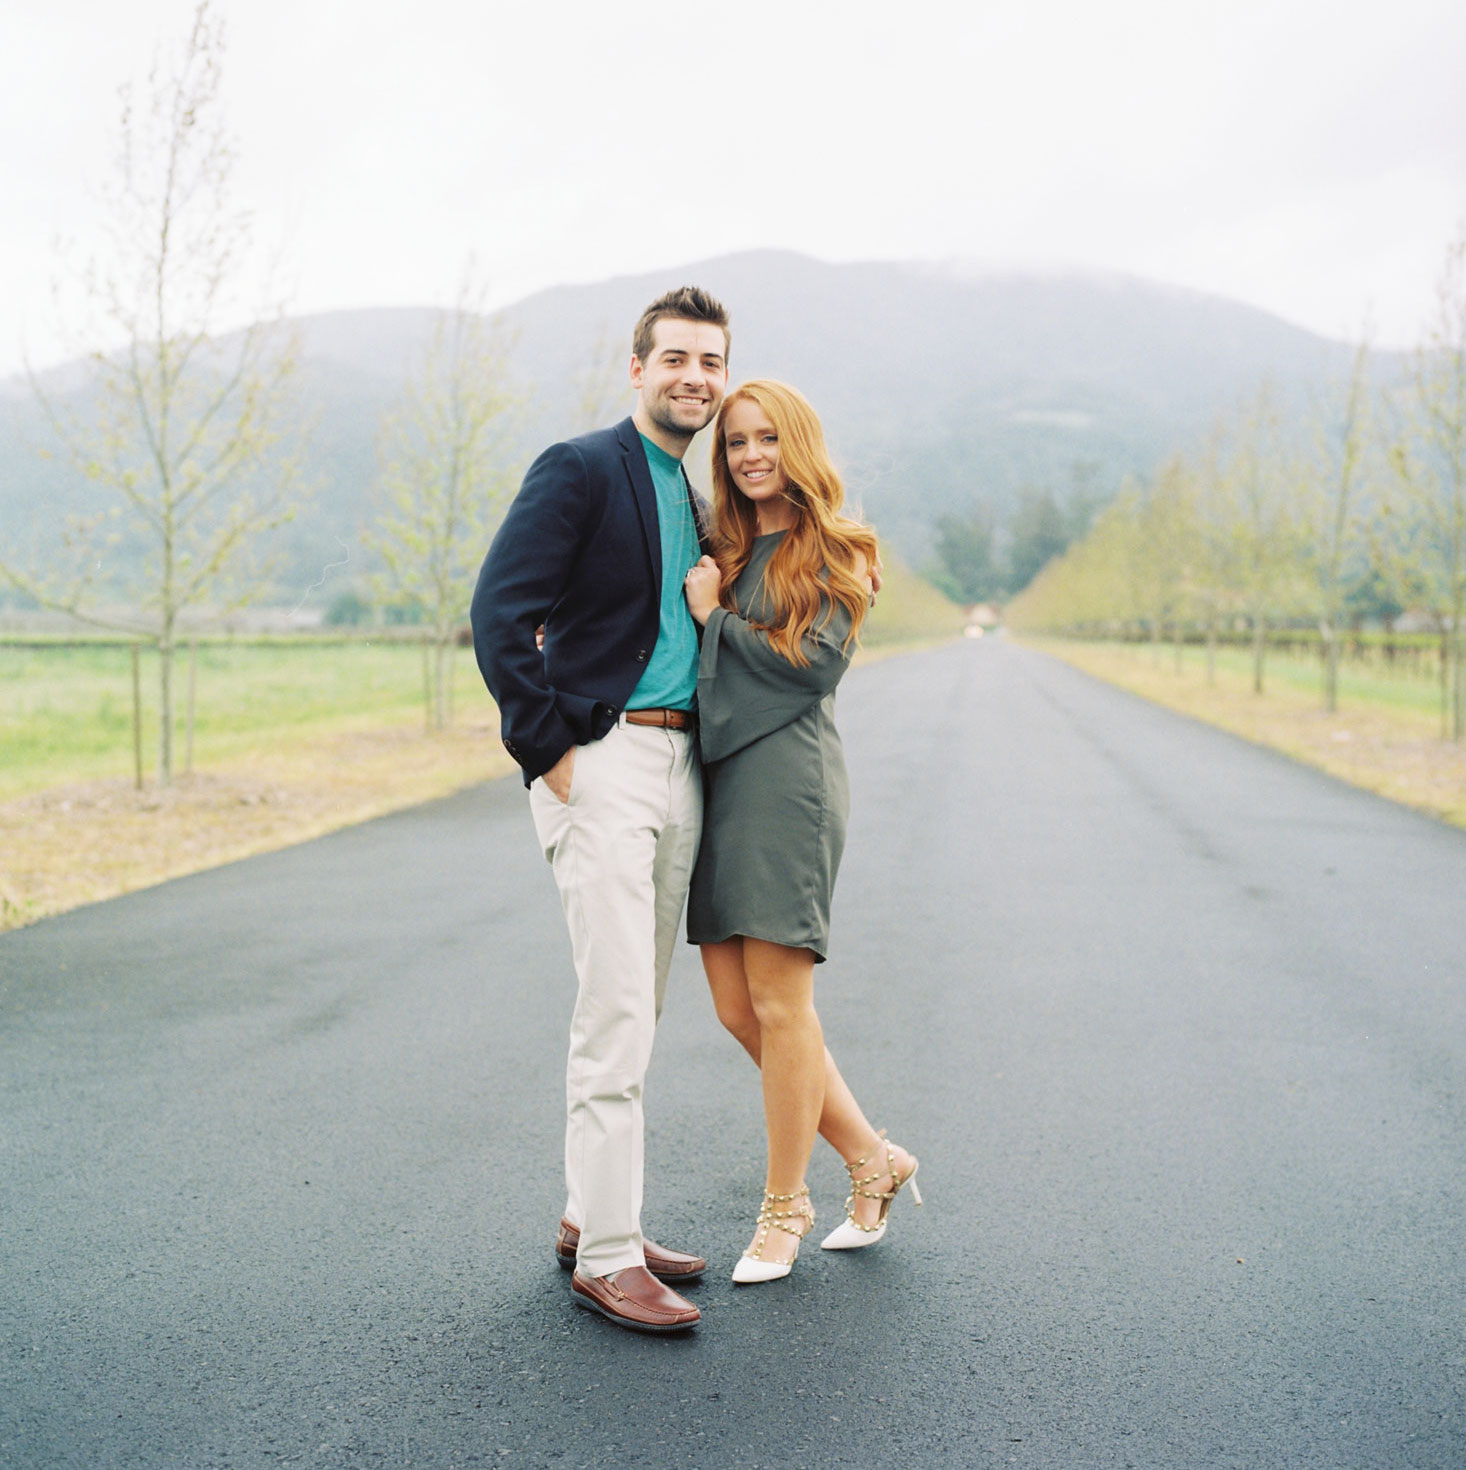 Bride and groom in Napa Valley after surprise wine tasting proposal